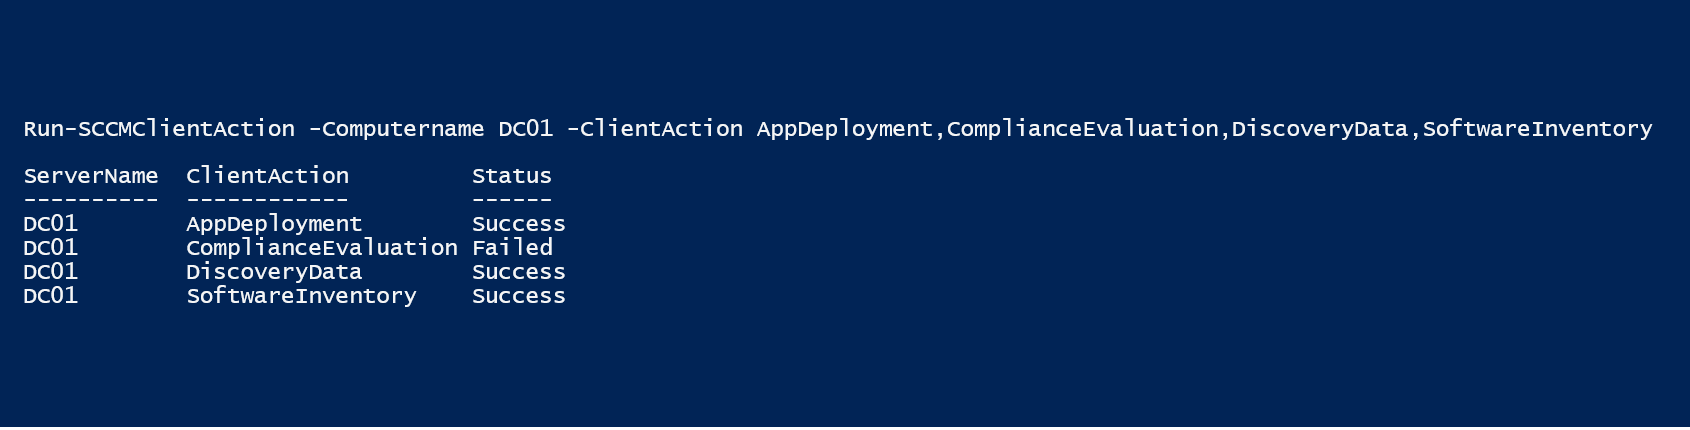 Run SCCM client actions on remote machines using PowerShell